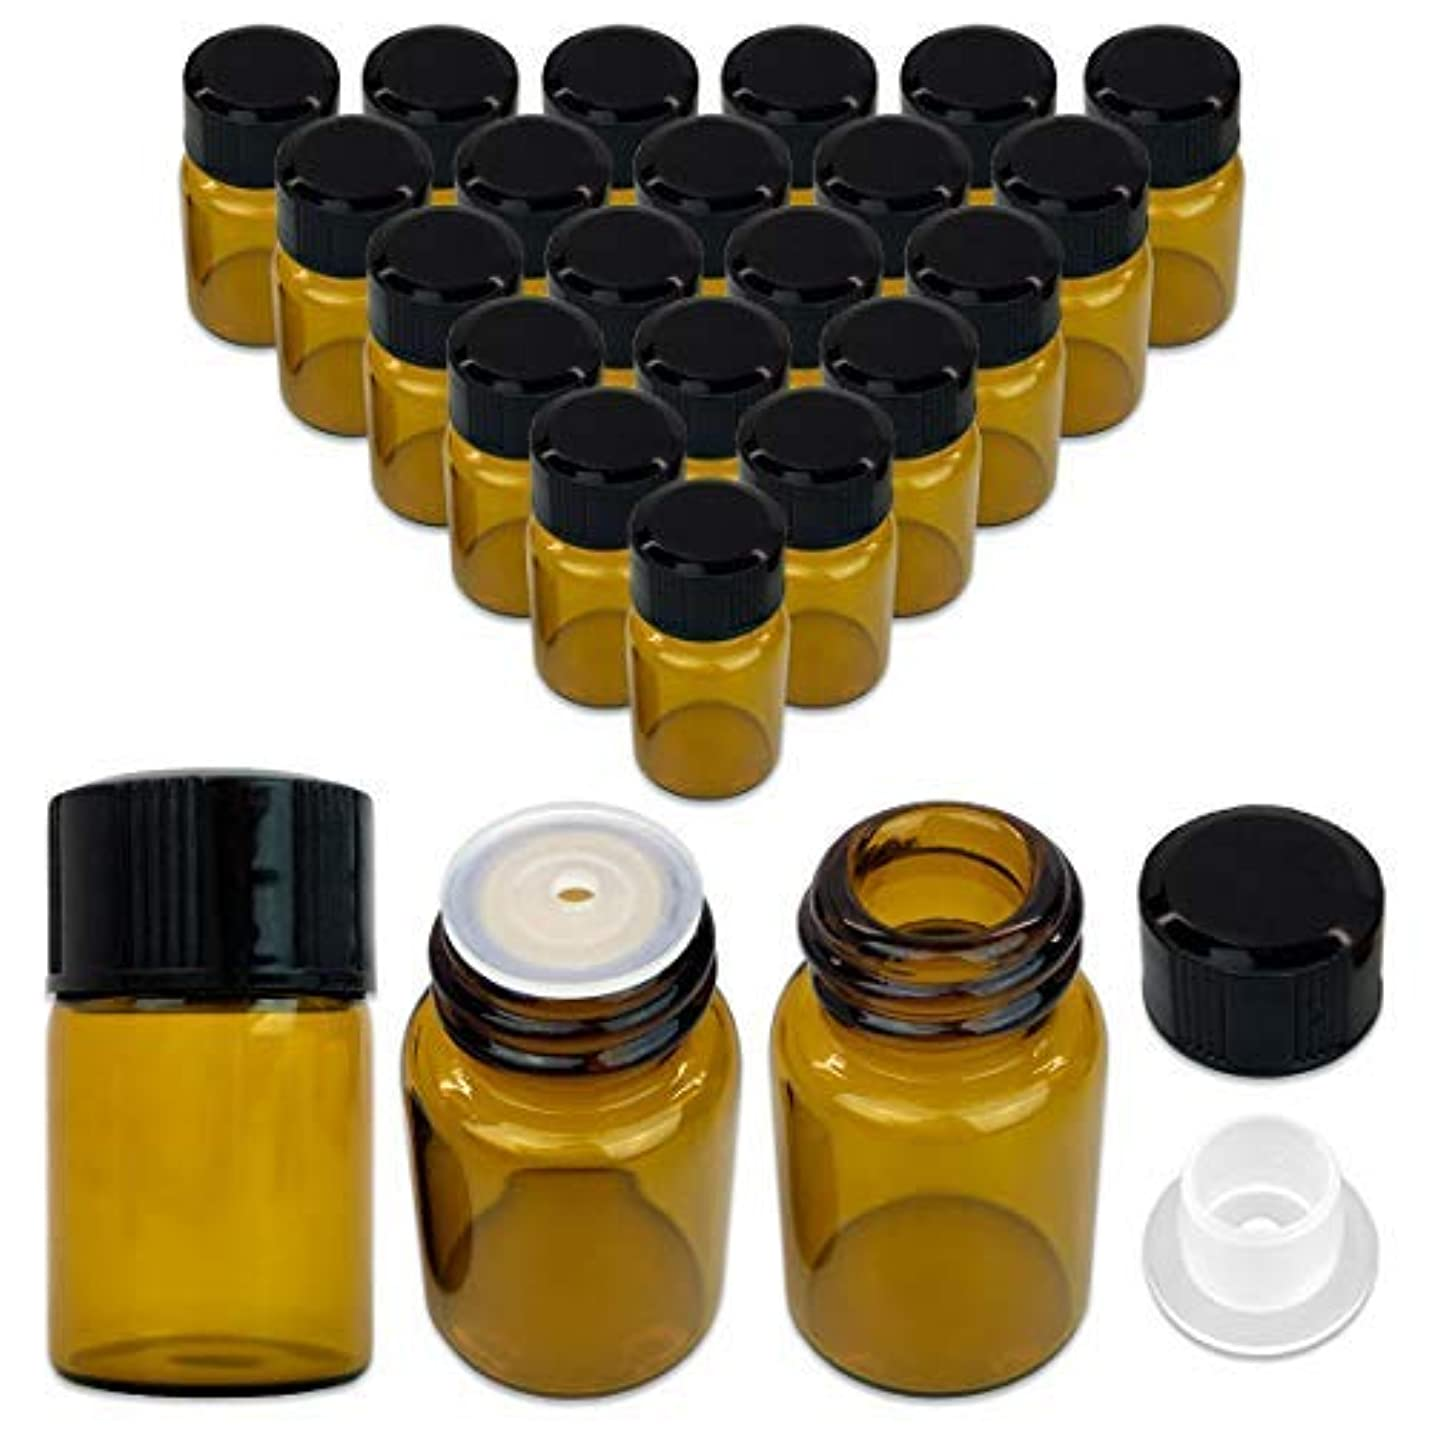 くしゃくしゃ保持するレディ24 Packs Beauticom 2ML Amber Glass Vial for Essential Oils, Aromatherapy, Fragrance, Serums, Spritzes, with Orifice...